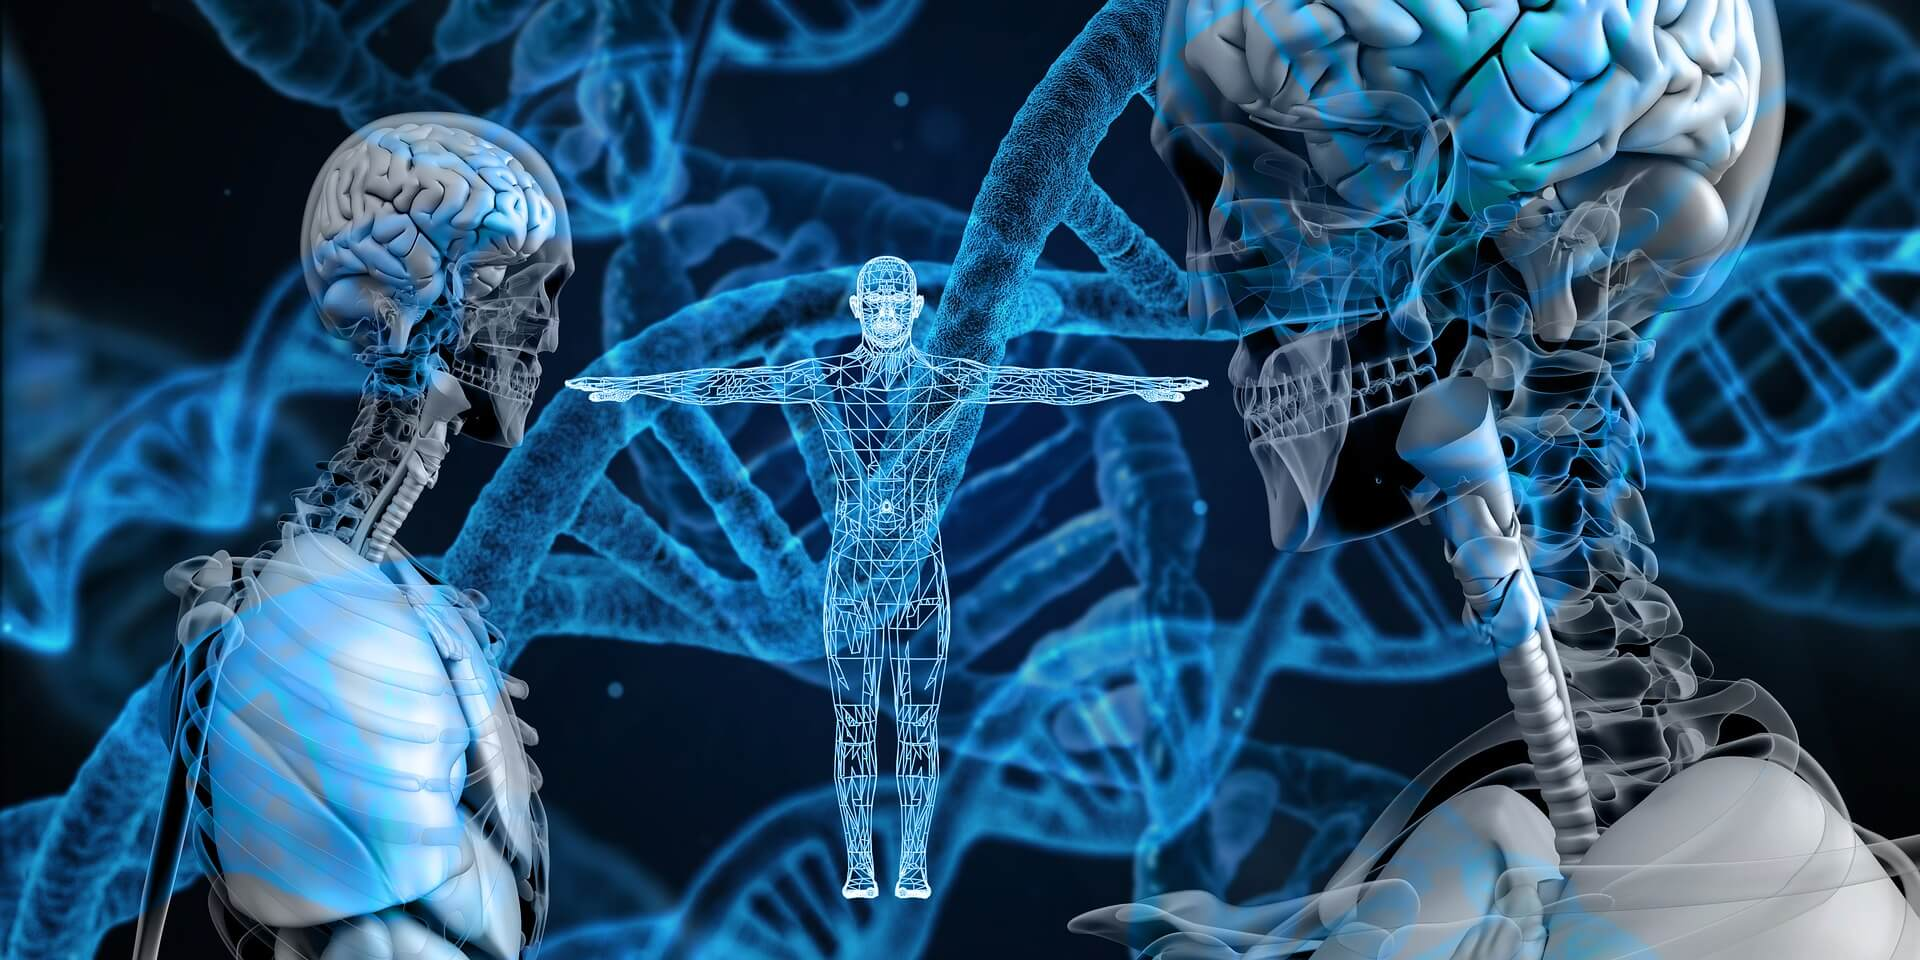 Genetics are the basis for our abilities and potential